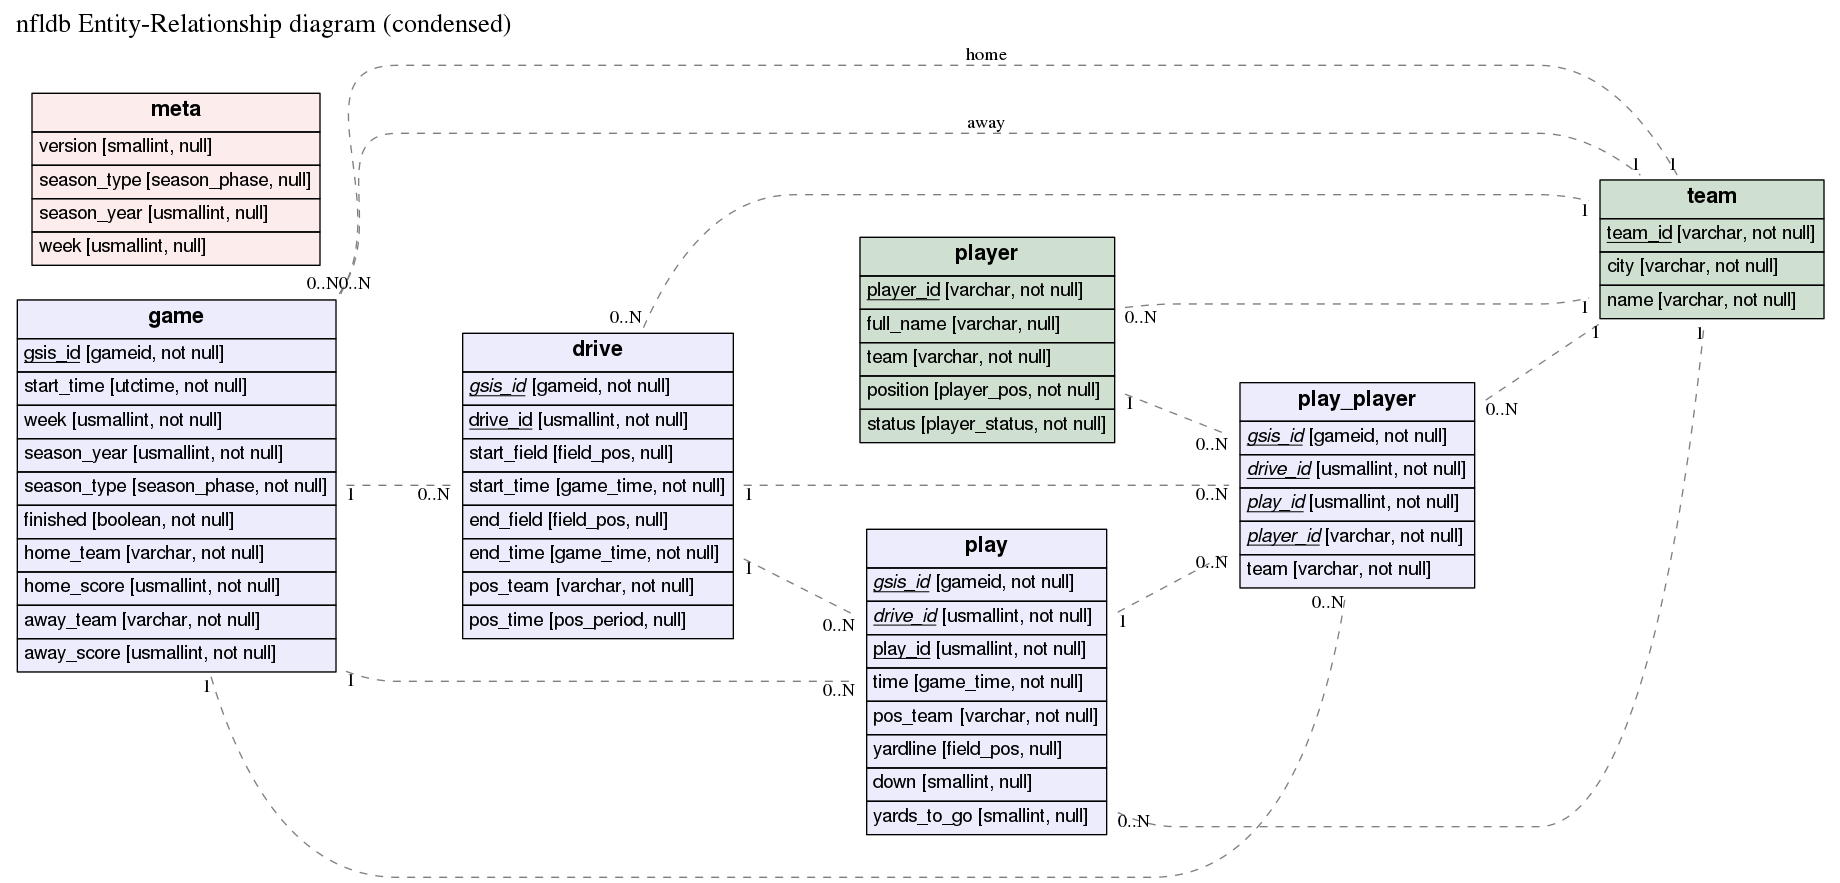 Github burntsushierd translates a plain text description of a er diagram for nfldb ccuart Gallery